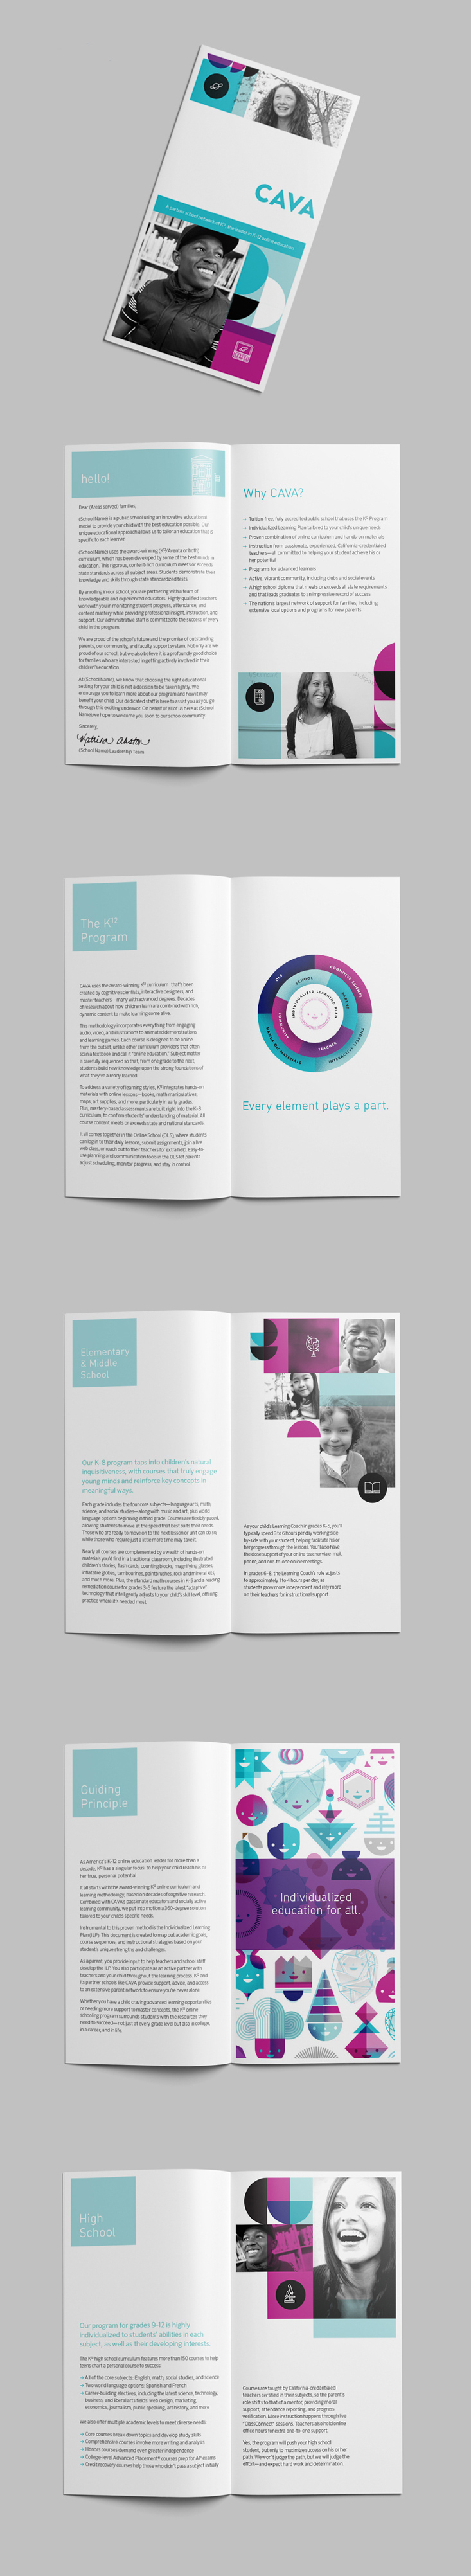 Icon Design and Book Layout  Client: K12 Inc. | Art Direction & Layout Design: Ryan McCullah